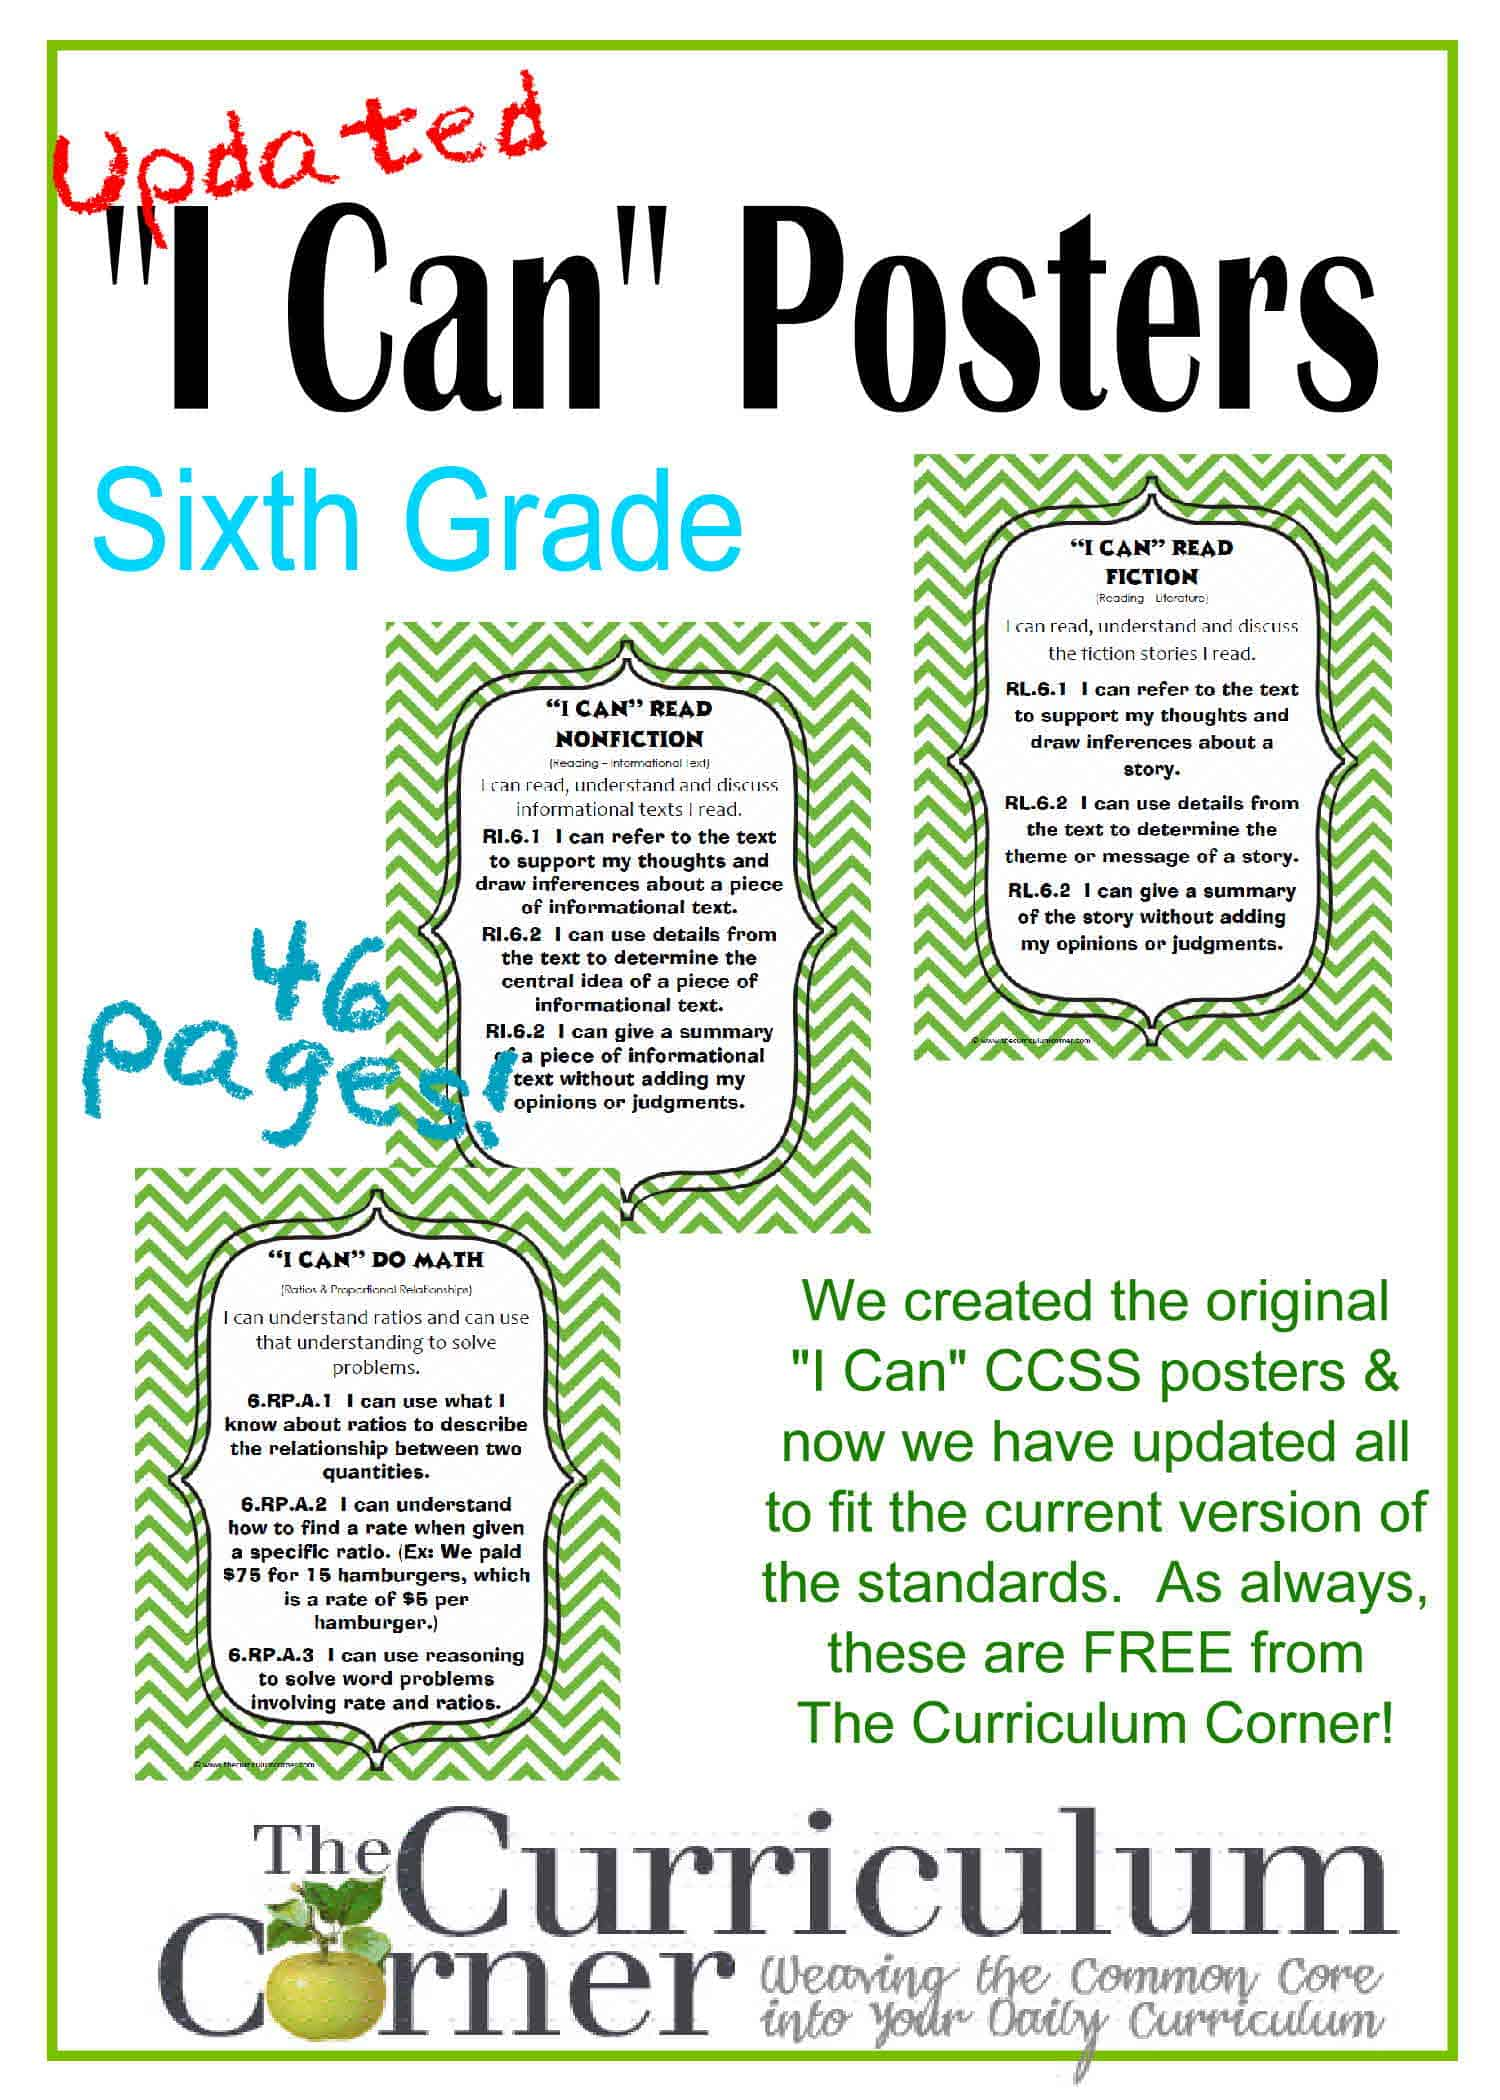 Updated 6th Grade I Can Ccss Posters In Green Chevron